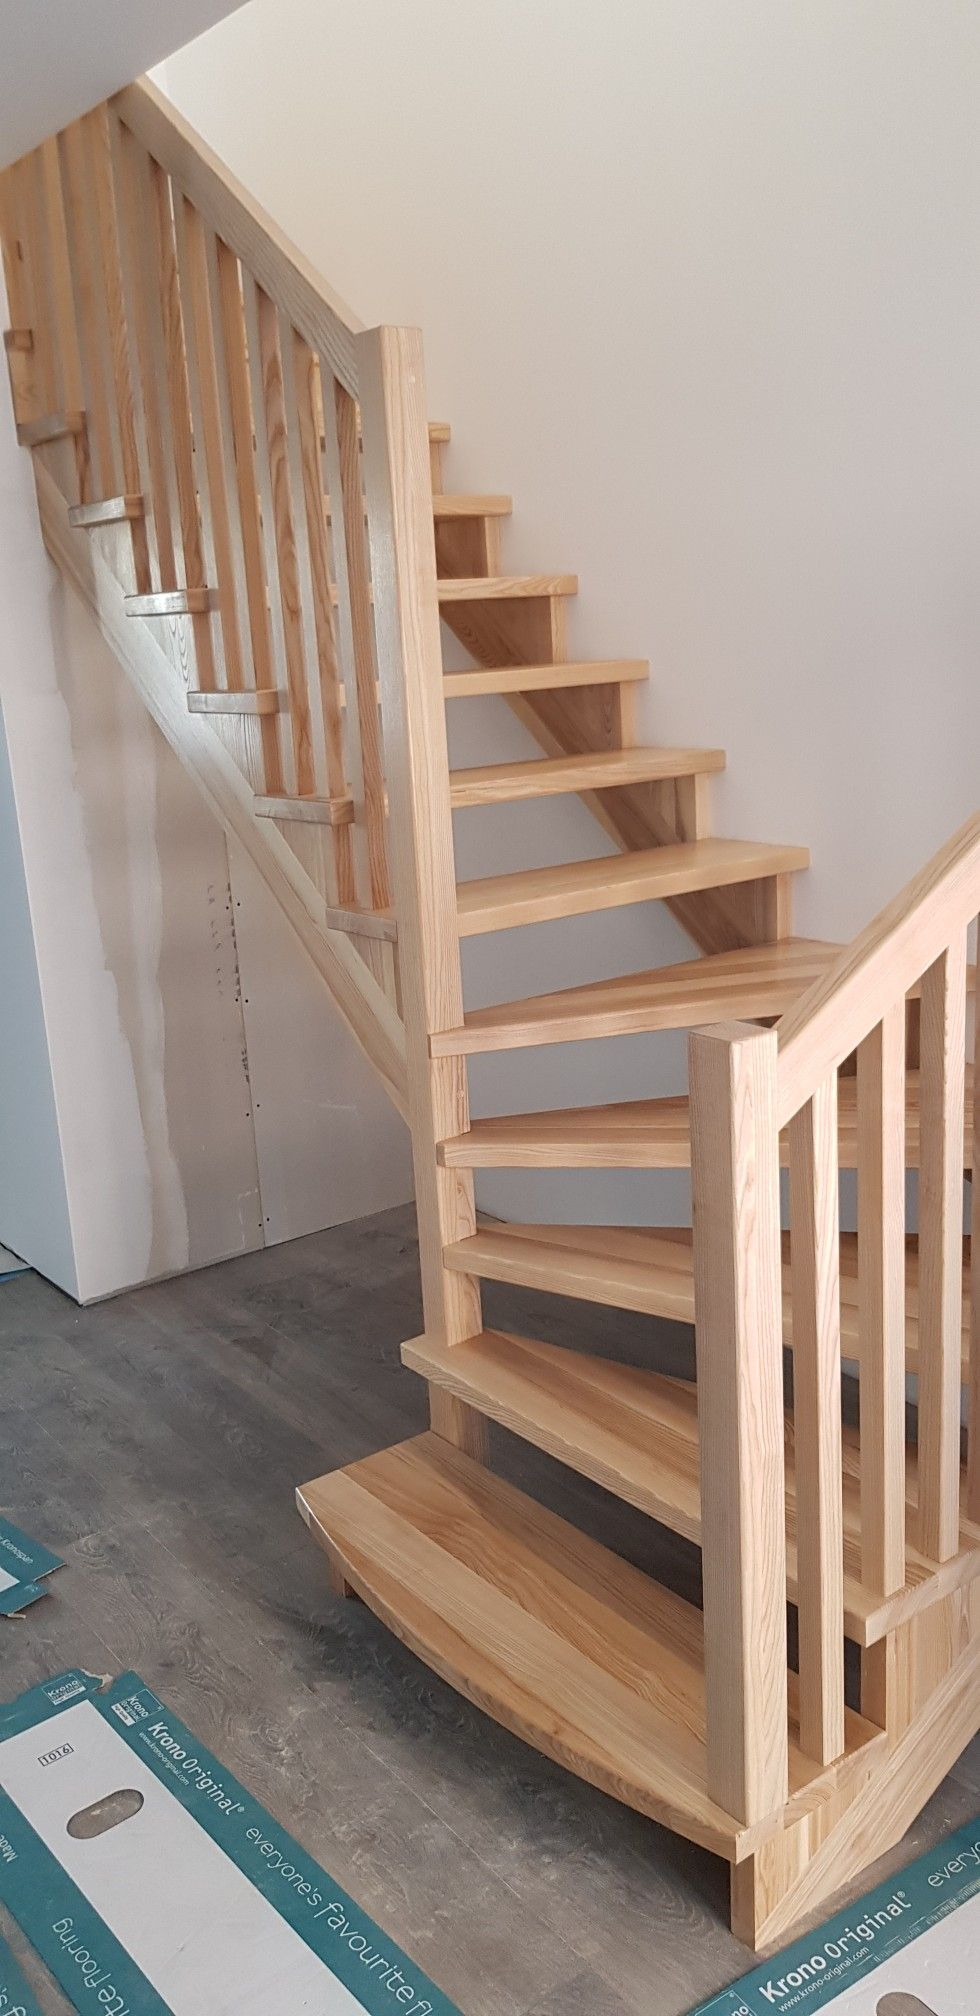 Best Compact Wooden Staircase For Small Spaces 30 Square Meters Staircase Smallspace Stairideas In 640 x 480